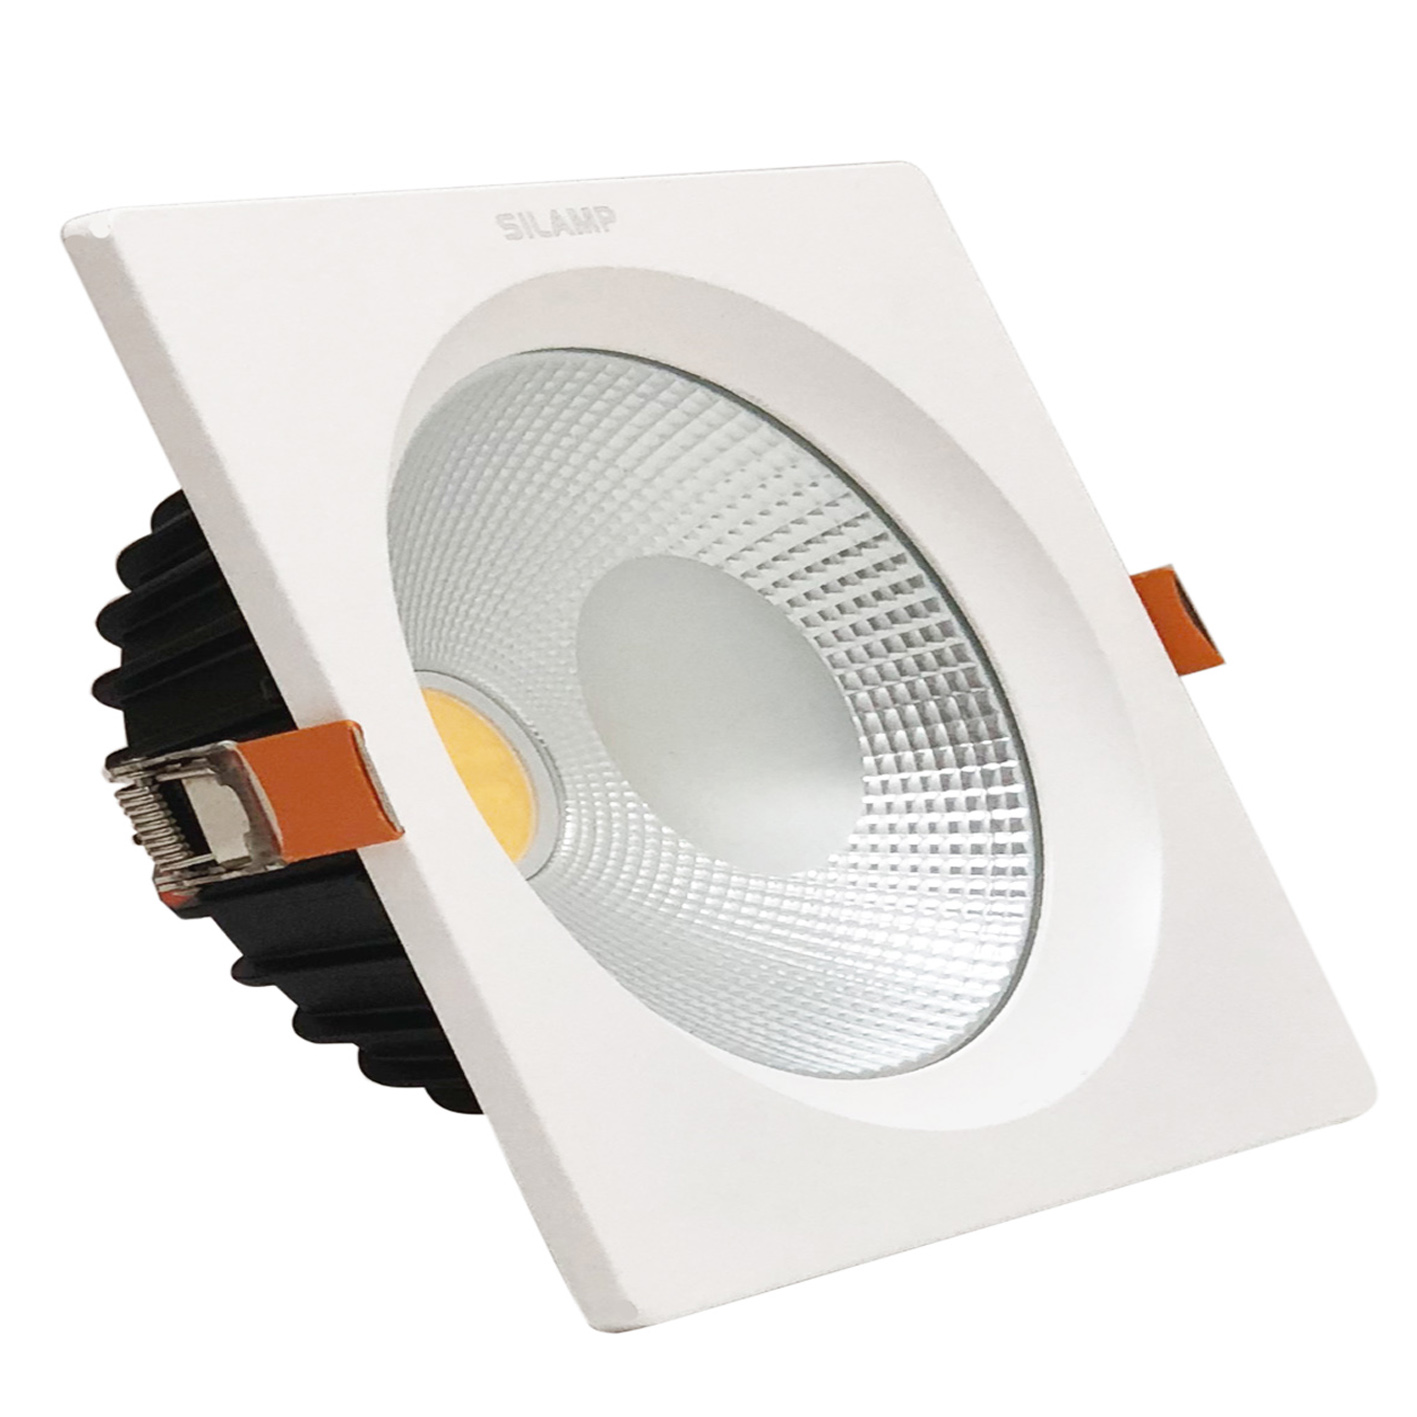 Faro led da incasso 40W Quadrato controsoffitto Cob incluso Driver